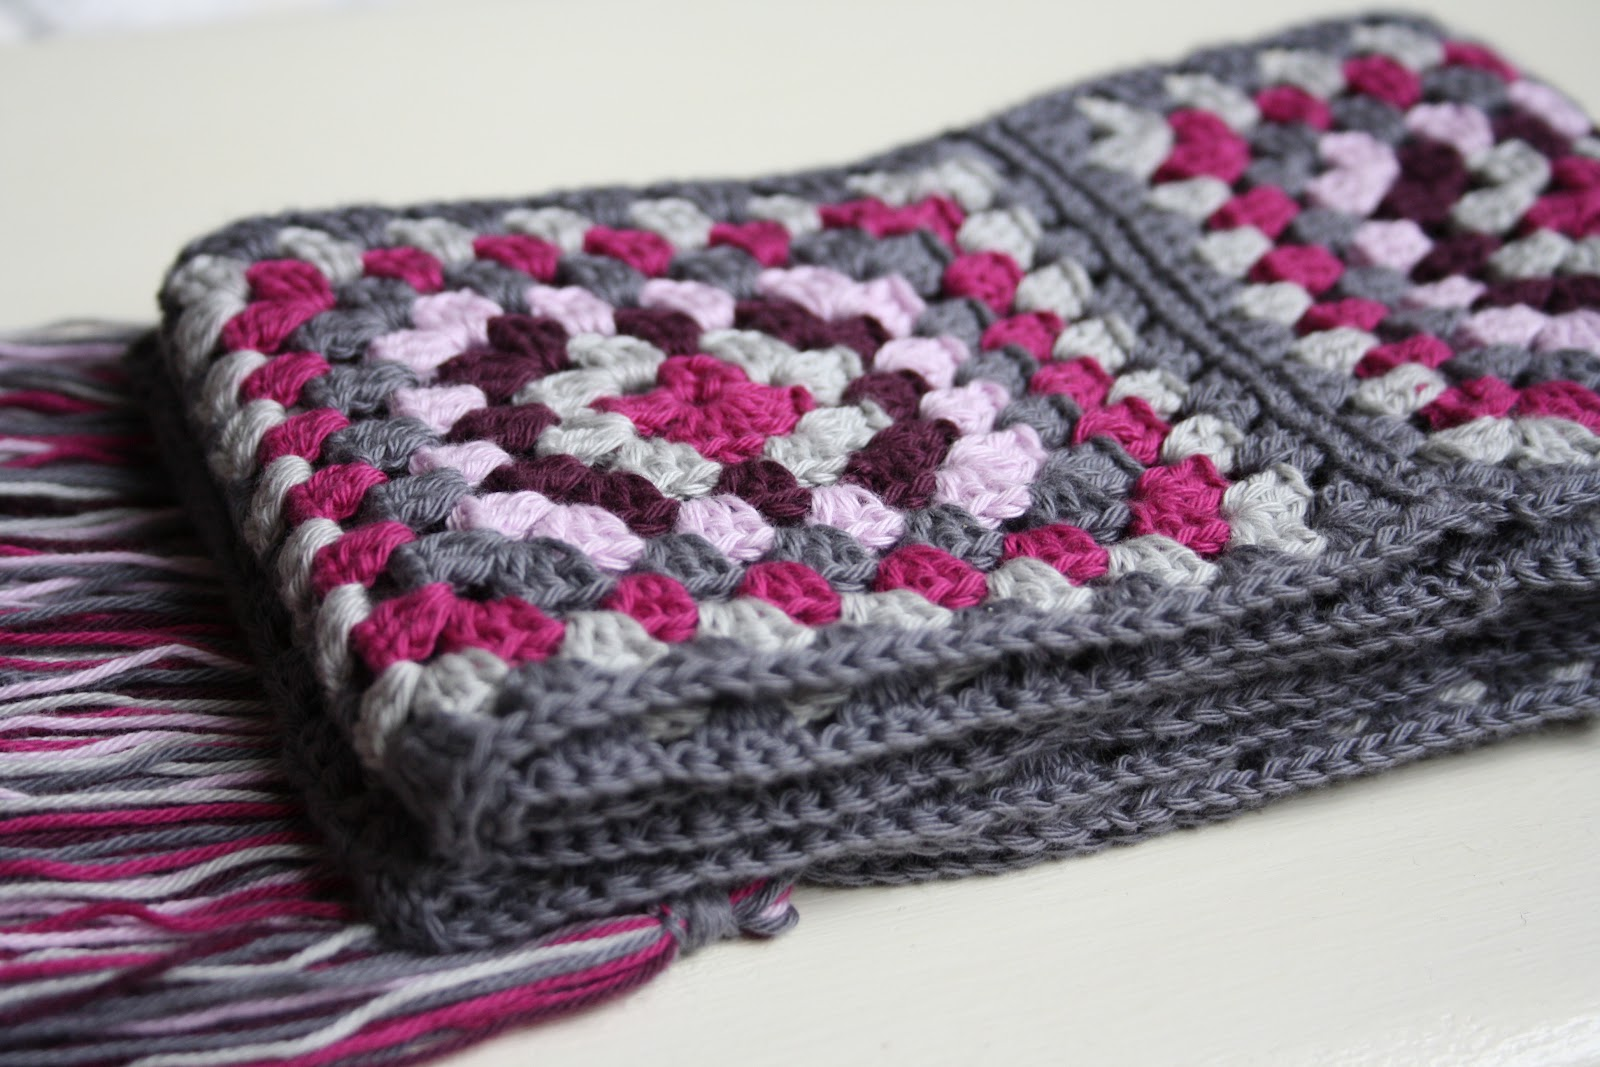 Free Crochet Granny Square Scarf Patterns : triangle granny square scarf crocheted in thread with a ...